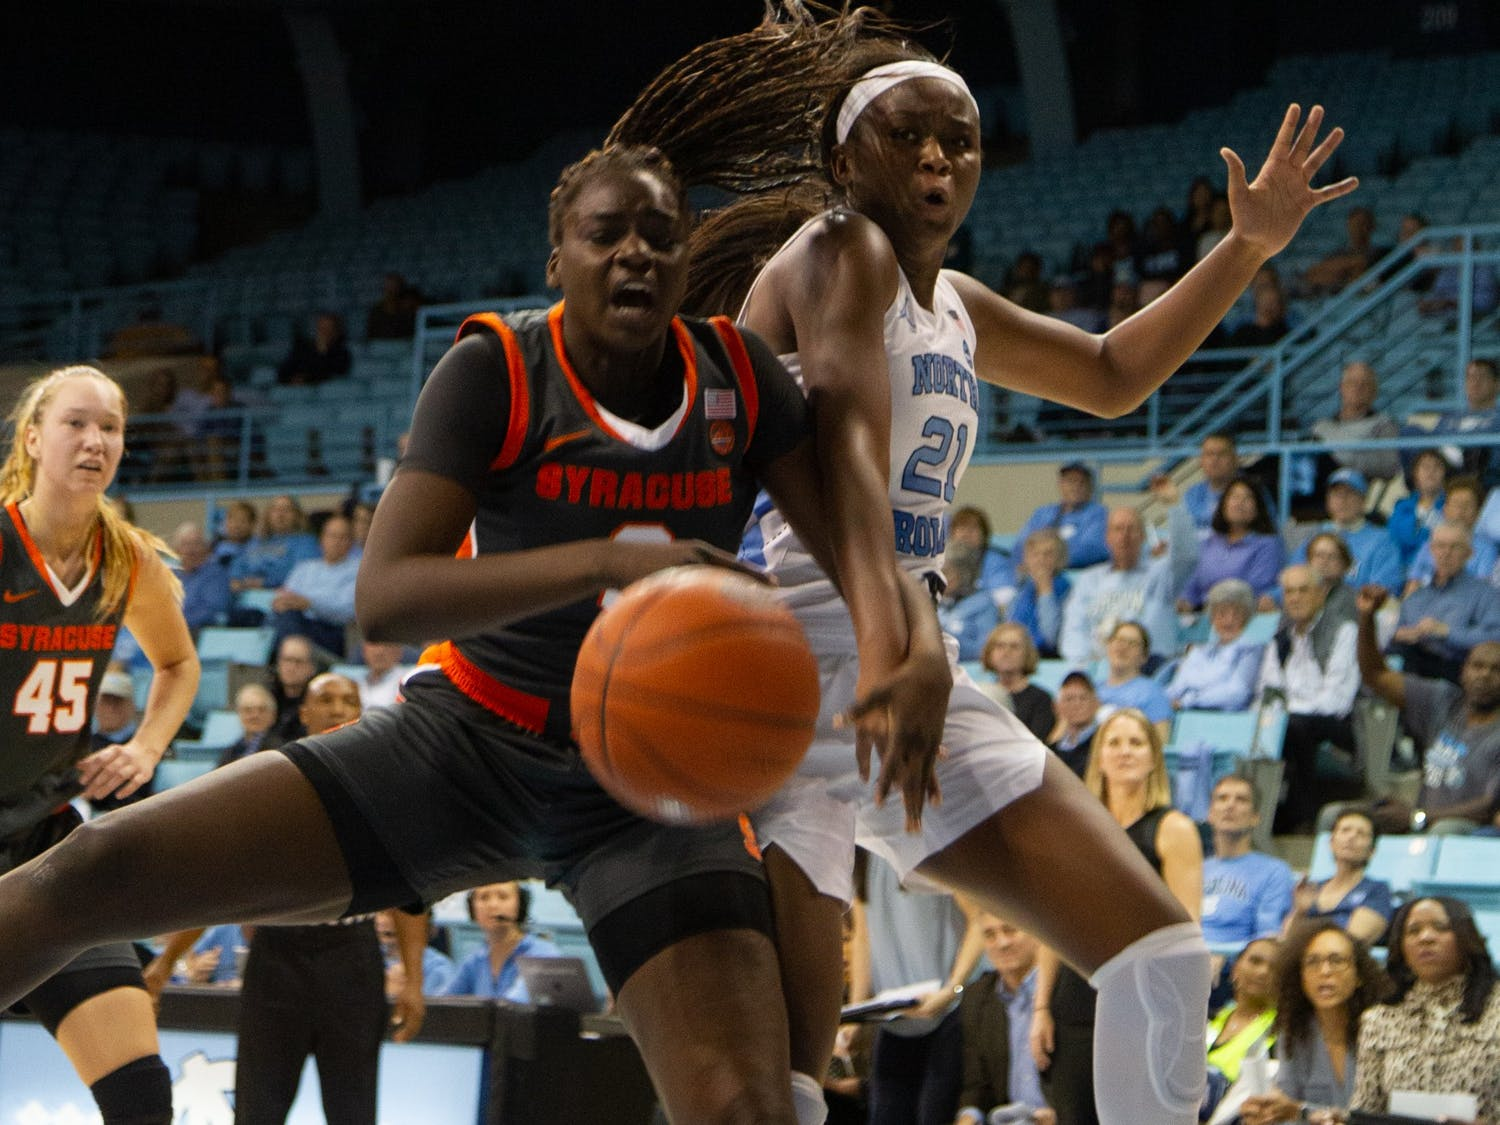 UNC freshmen forward Malu Tshitenge (21) attempts to re bound with Syracuse Maeva Djaldi-Tabdi (3) during a game in Carmichael Arena on Thursday, Feb. 13, 2020. The Orange beat the Tar Heels 74-56.